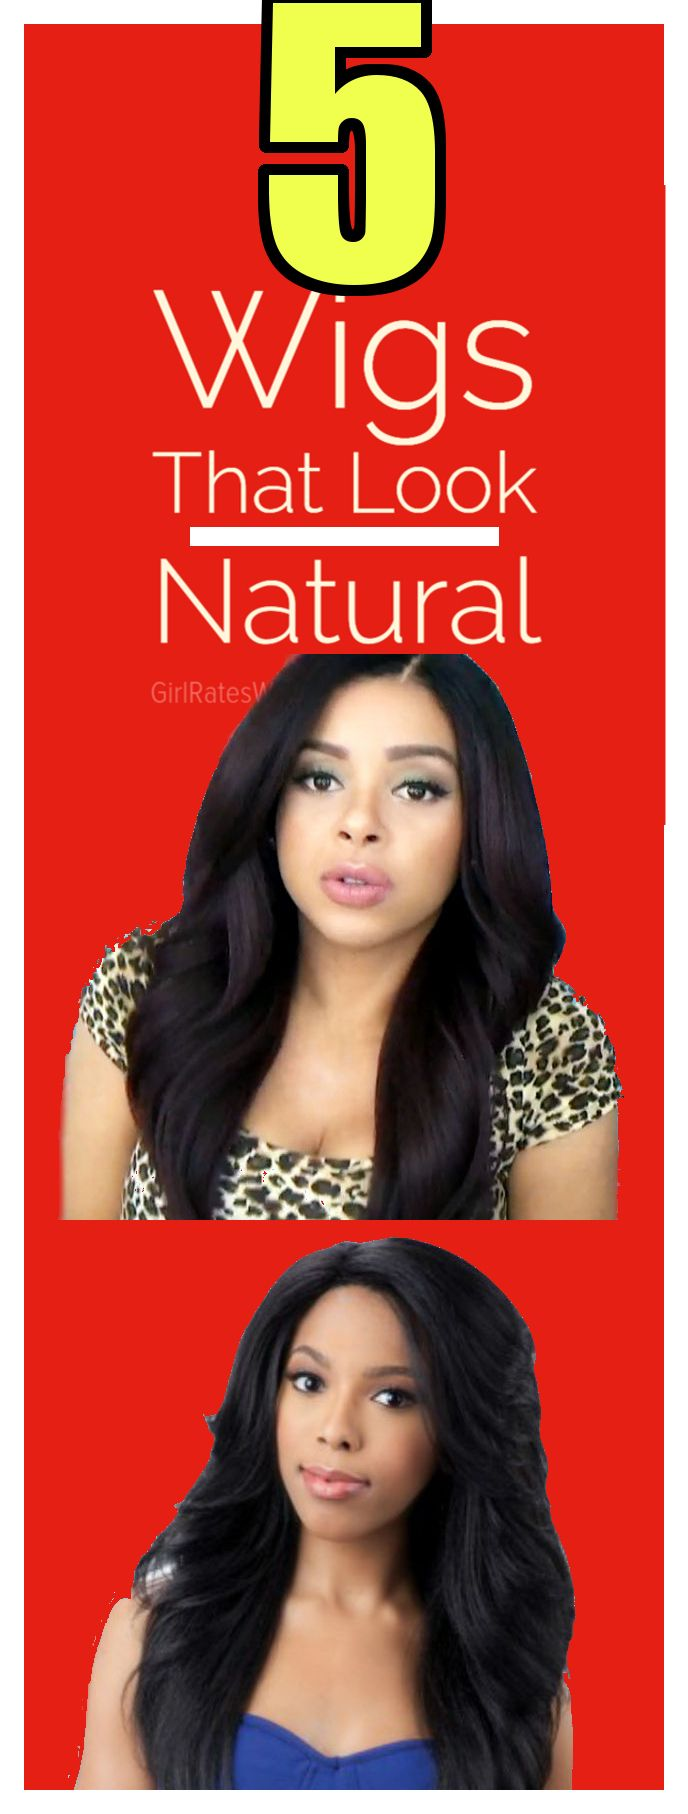 cheap wigs that look natural, affordable wigs that look real, natural wigs, yaki texture lace front wigs